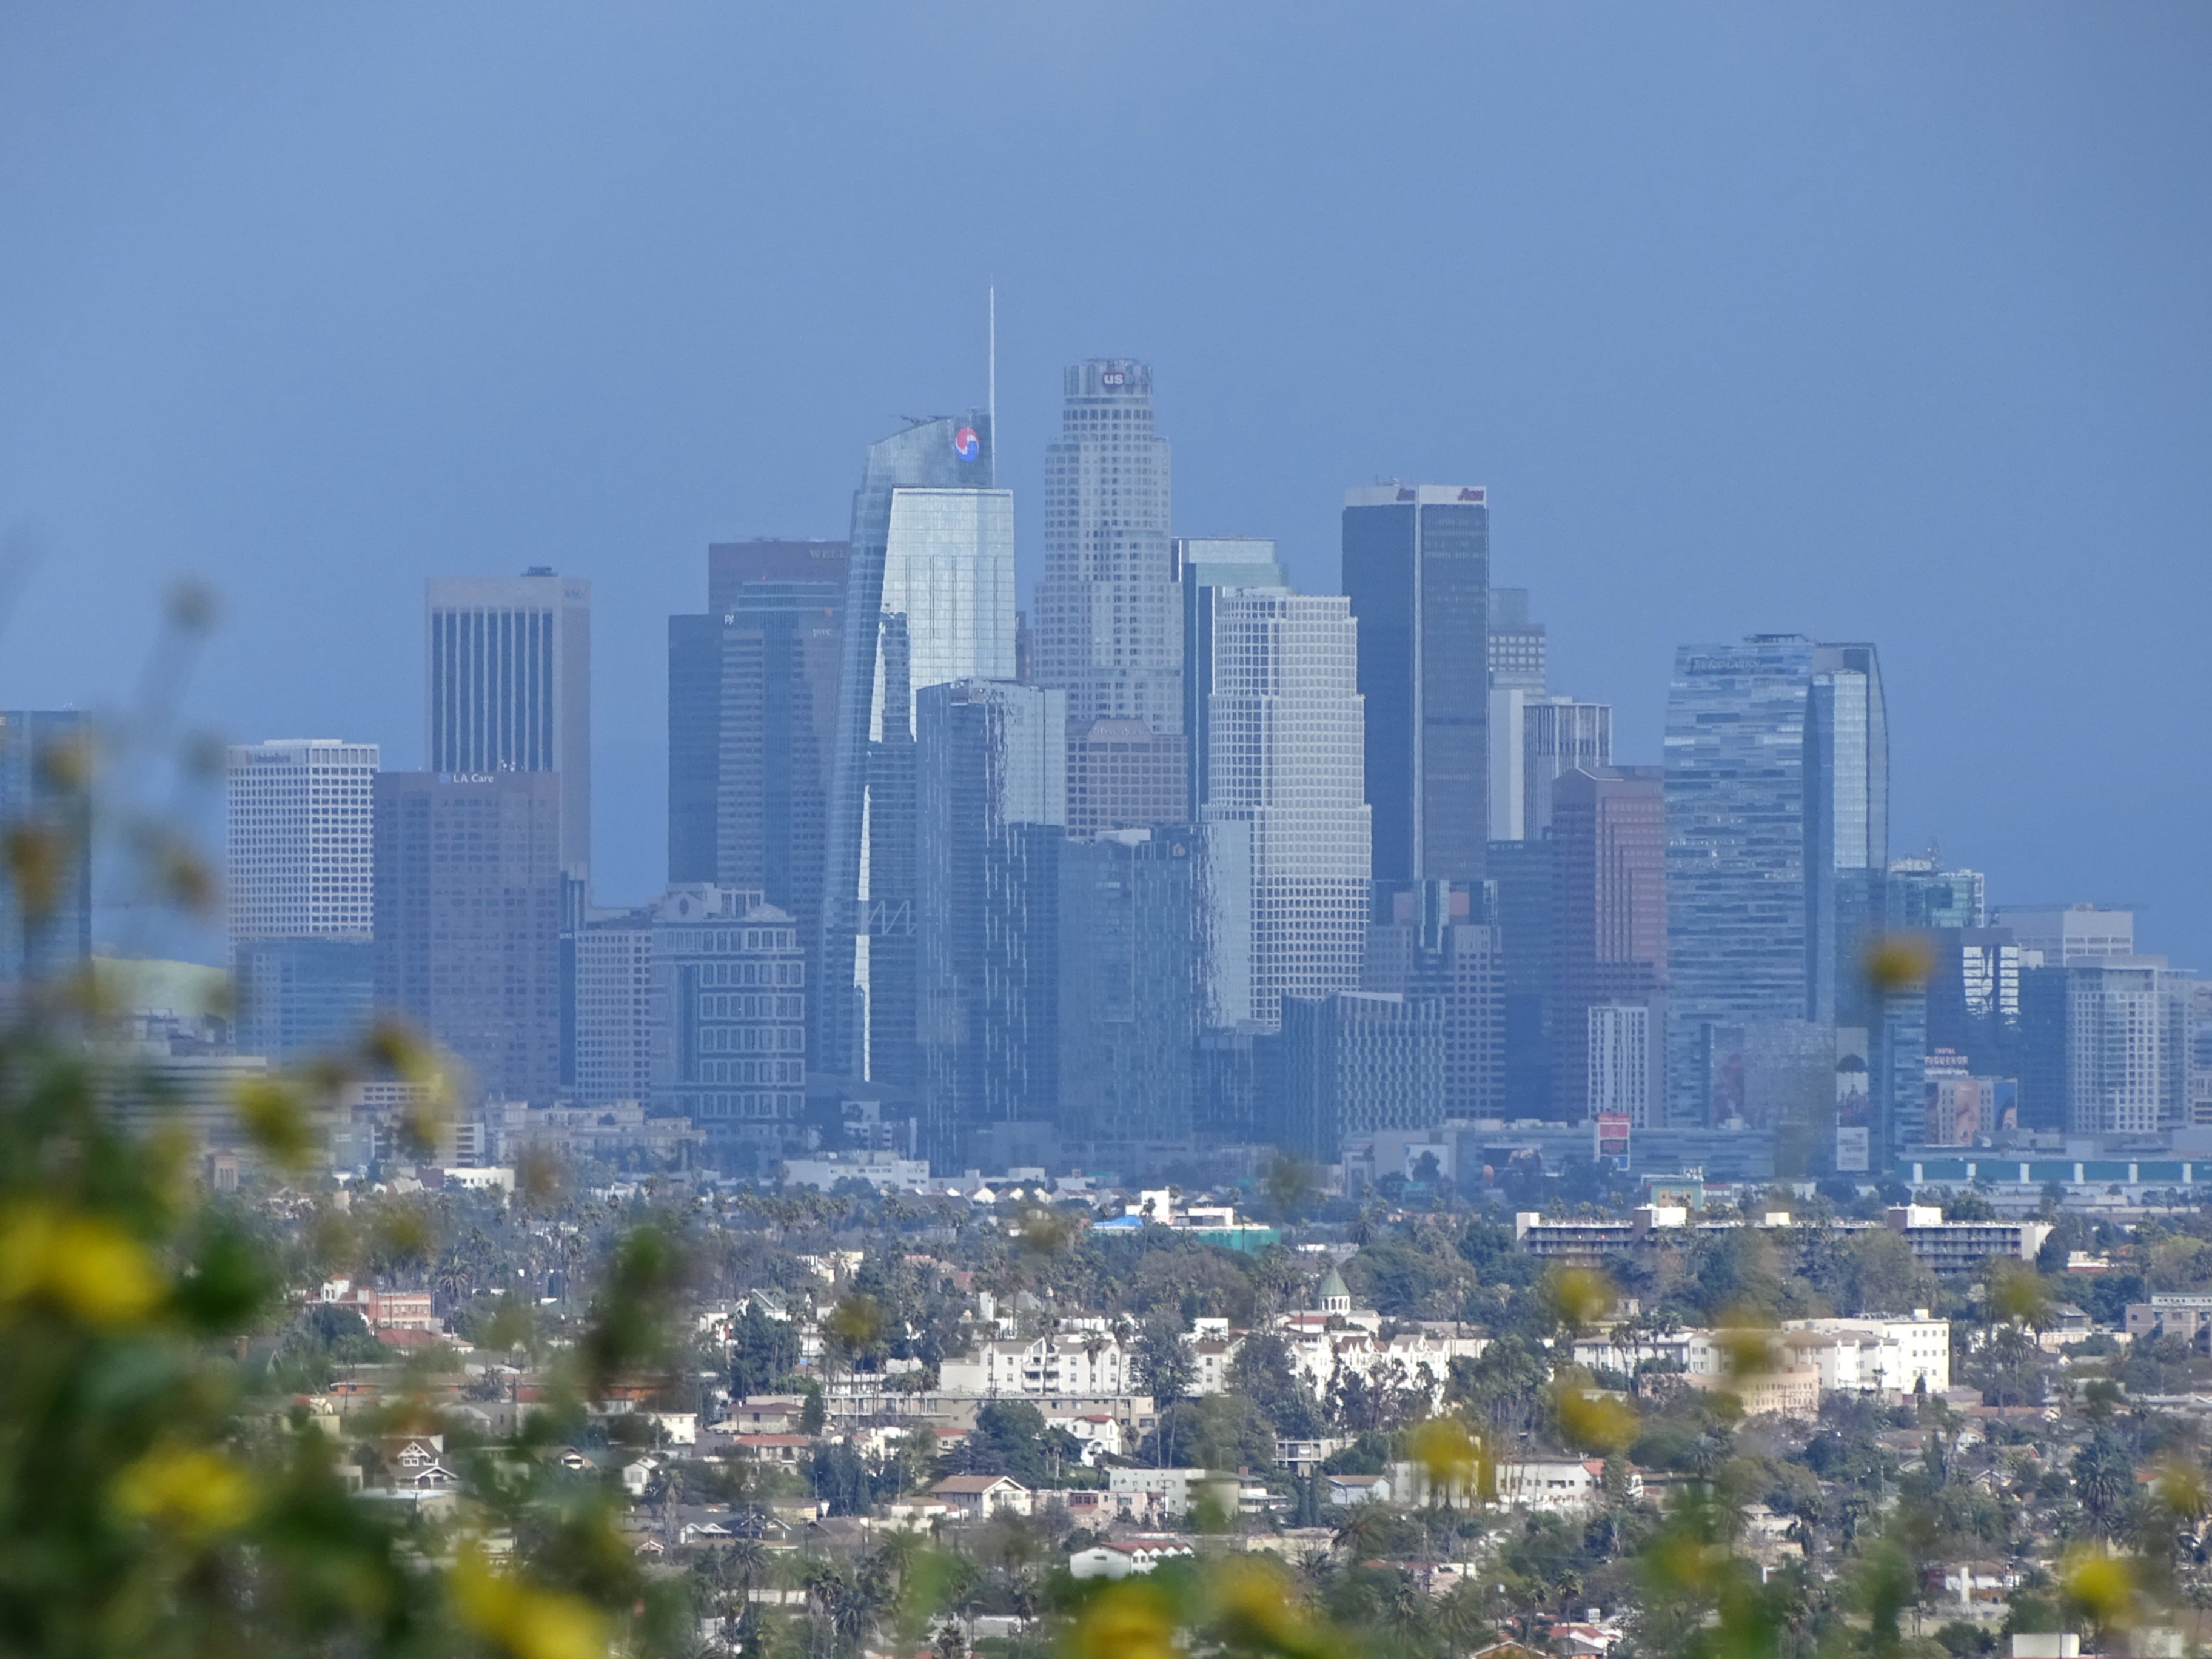 The Baldwin Hills Scenic Overlook is one of the best places to visit in LA